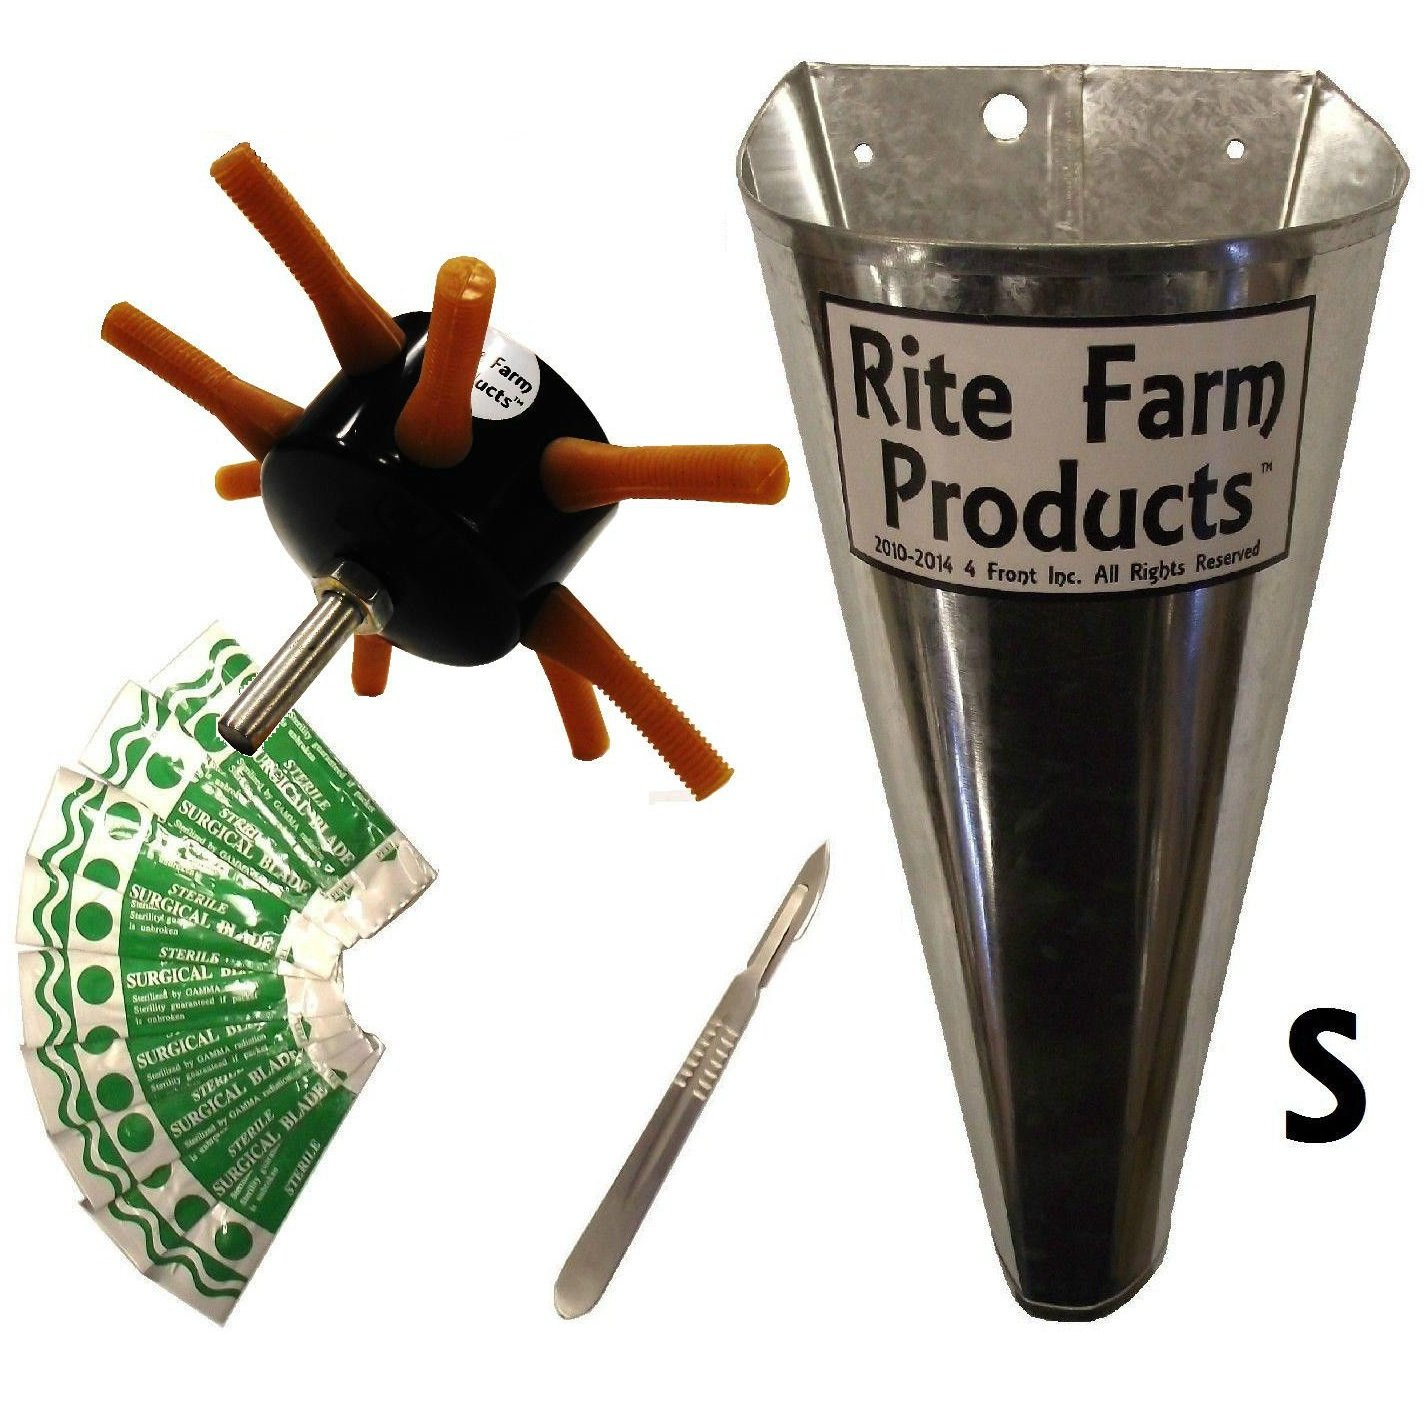 S8 RITE FARM DRILL CHICKEN PLUCKER KIT SMALL KILL CONE 10 BLADES & SCALPEL POULTRY by Rite Farm Products